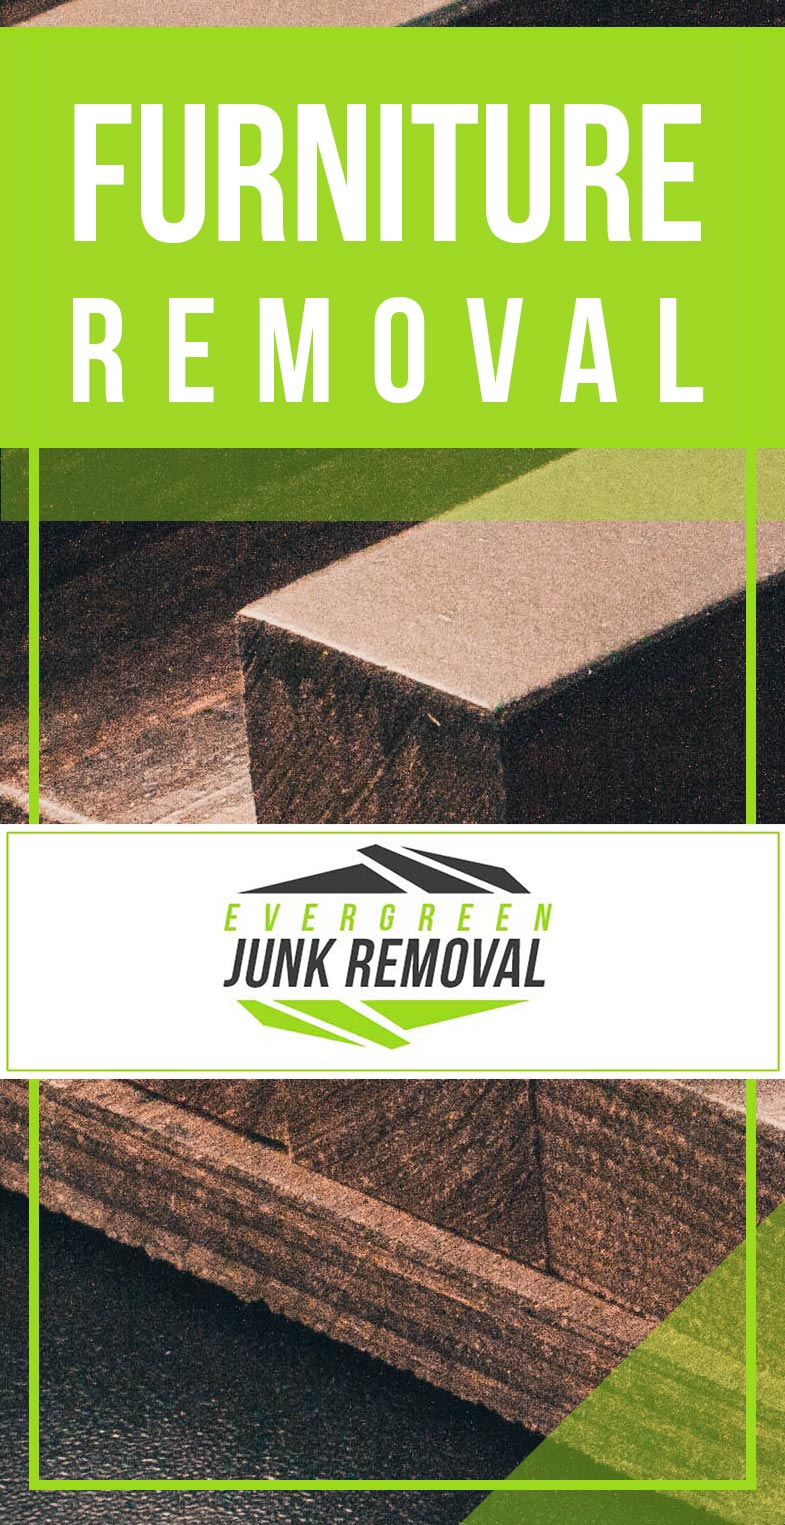 Junk Removal Lauderhill Furniture Removal